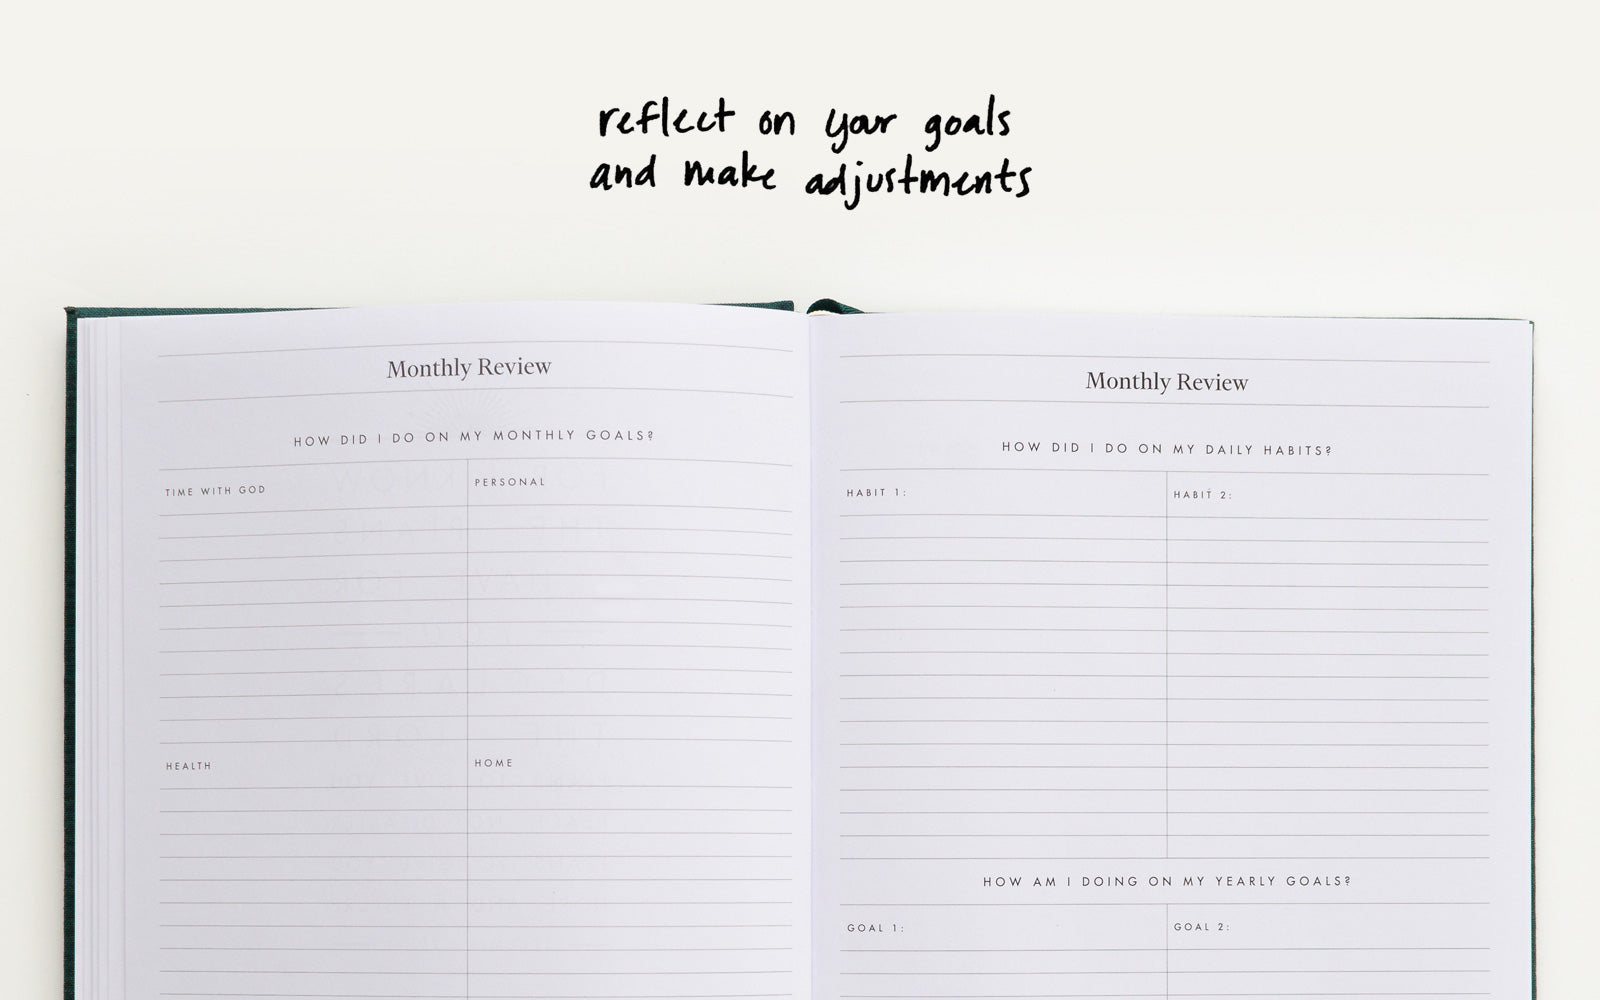 Reflect on your goals and make adjustments